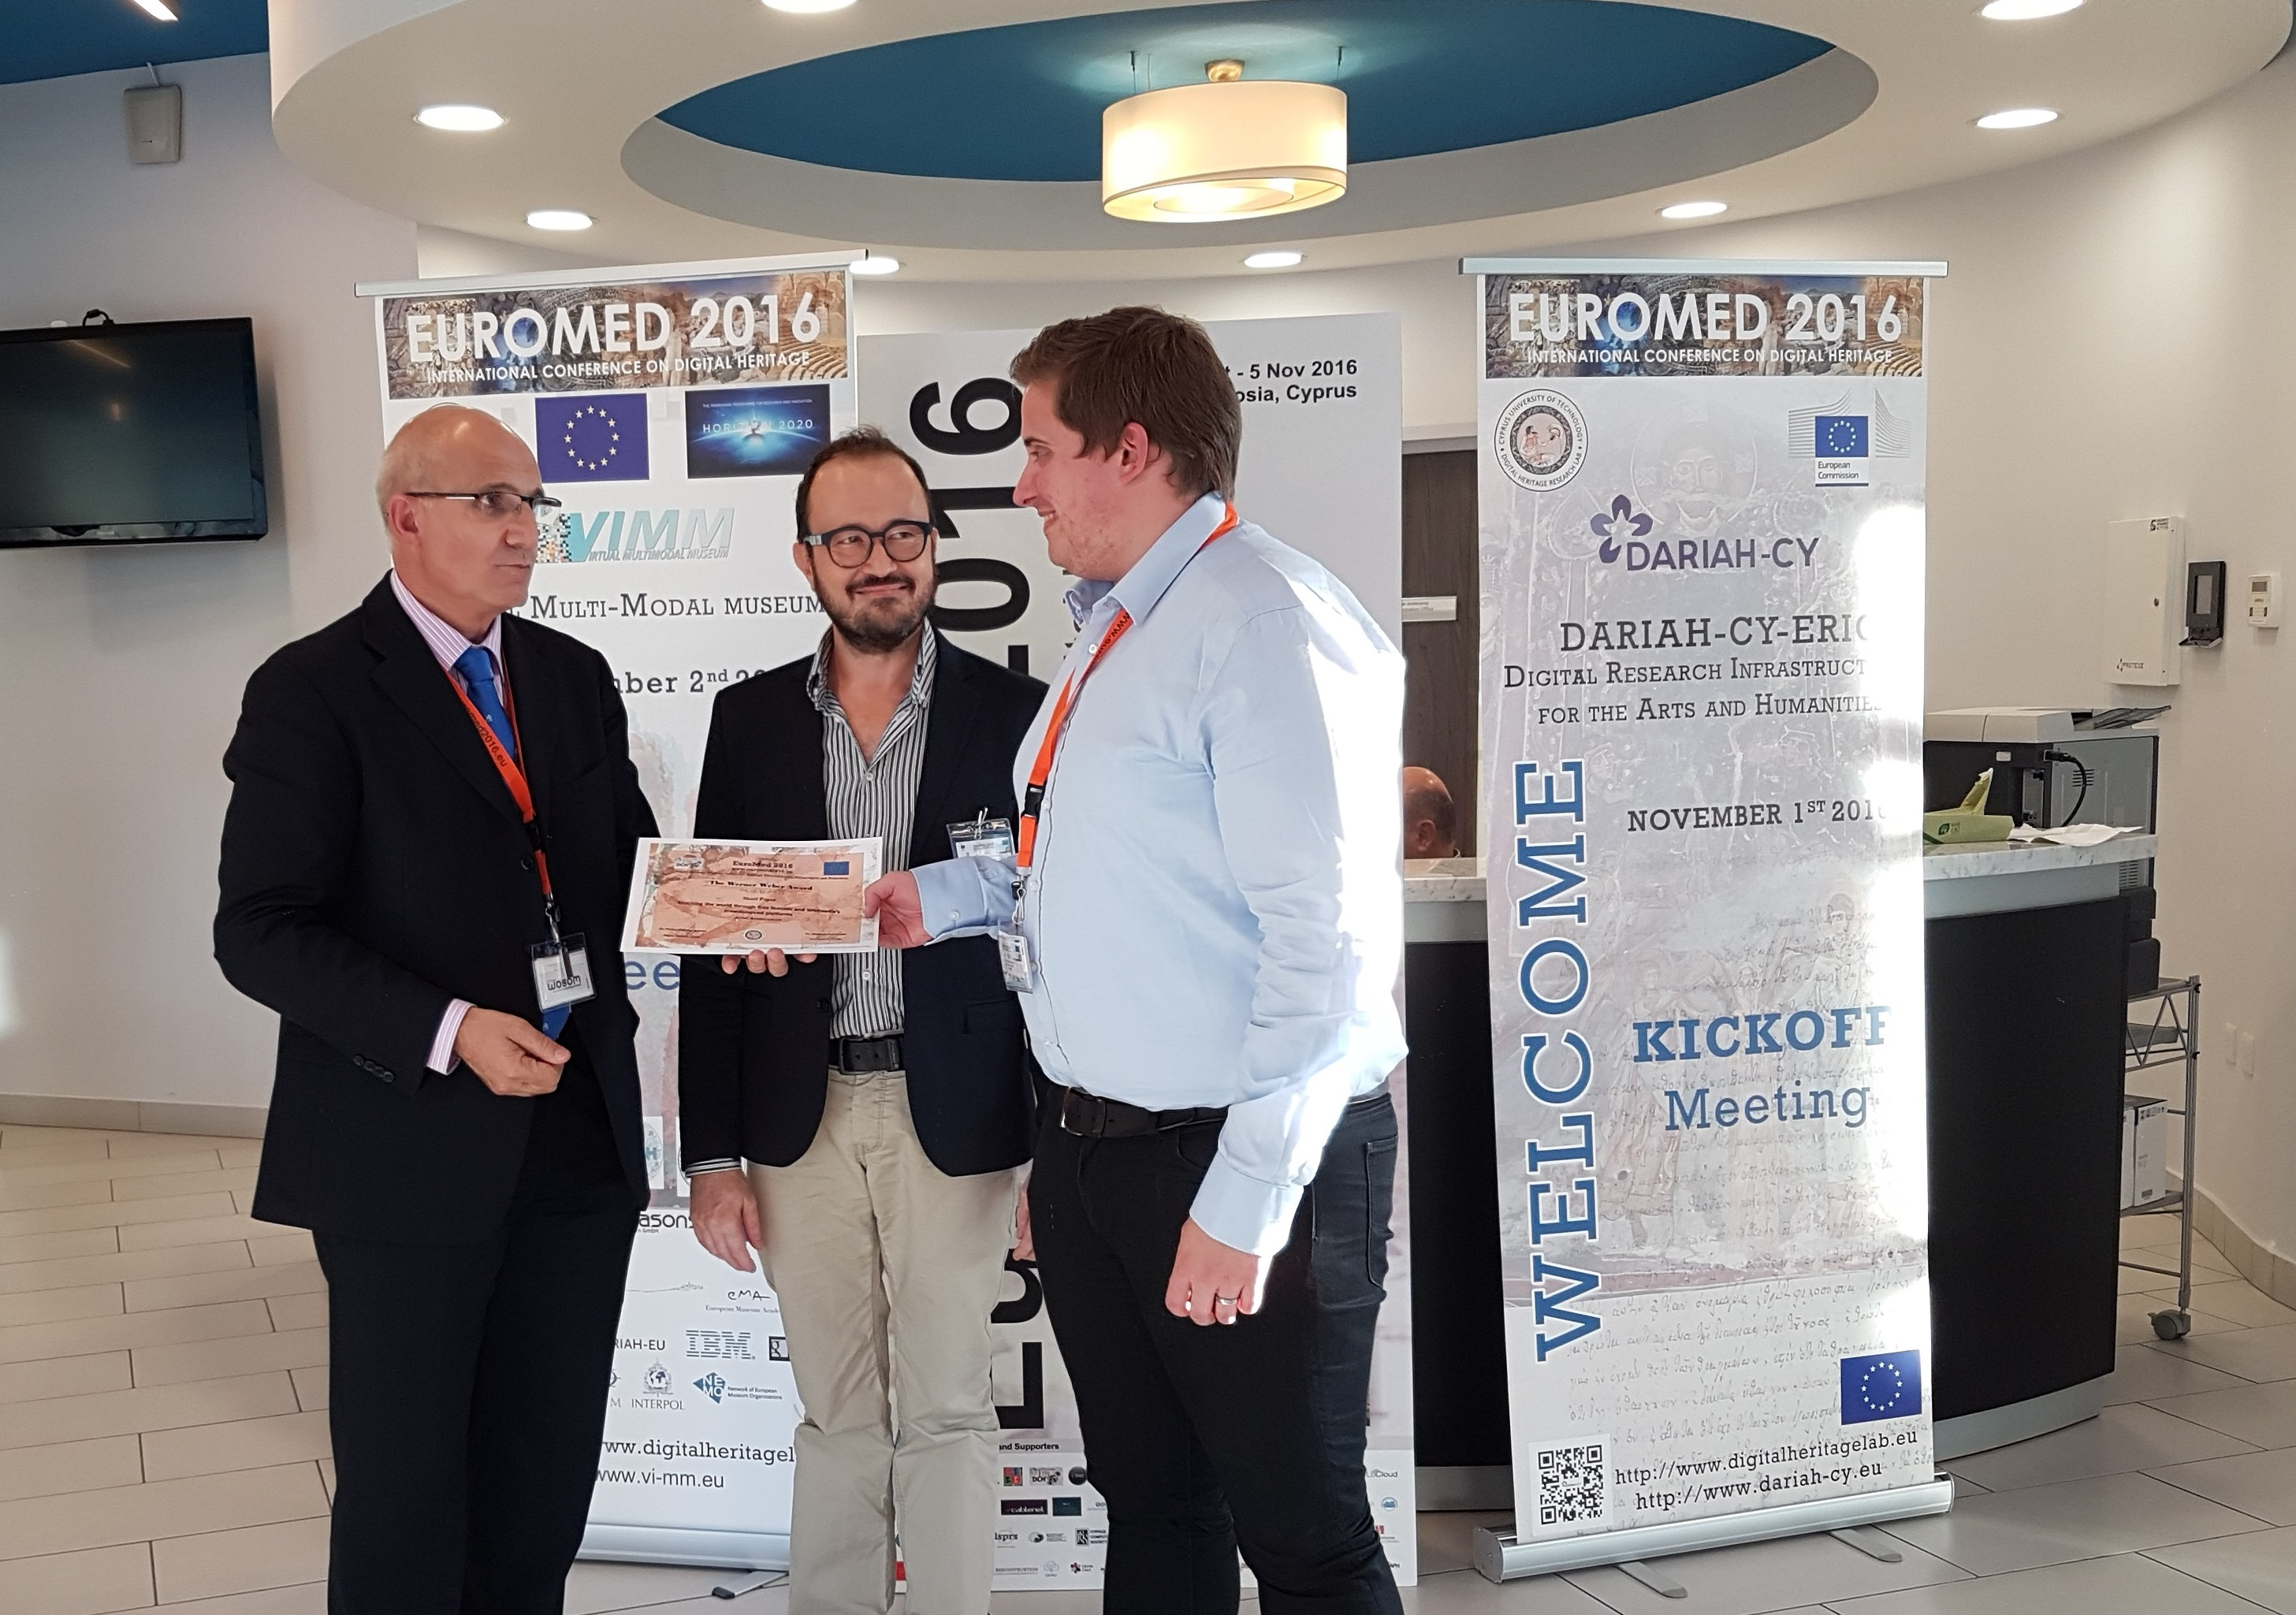 euromed_20162c_best_short_paper_award_01